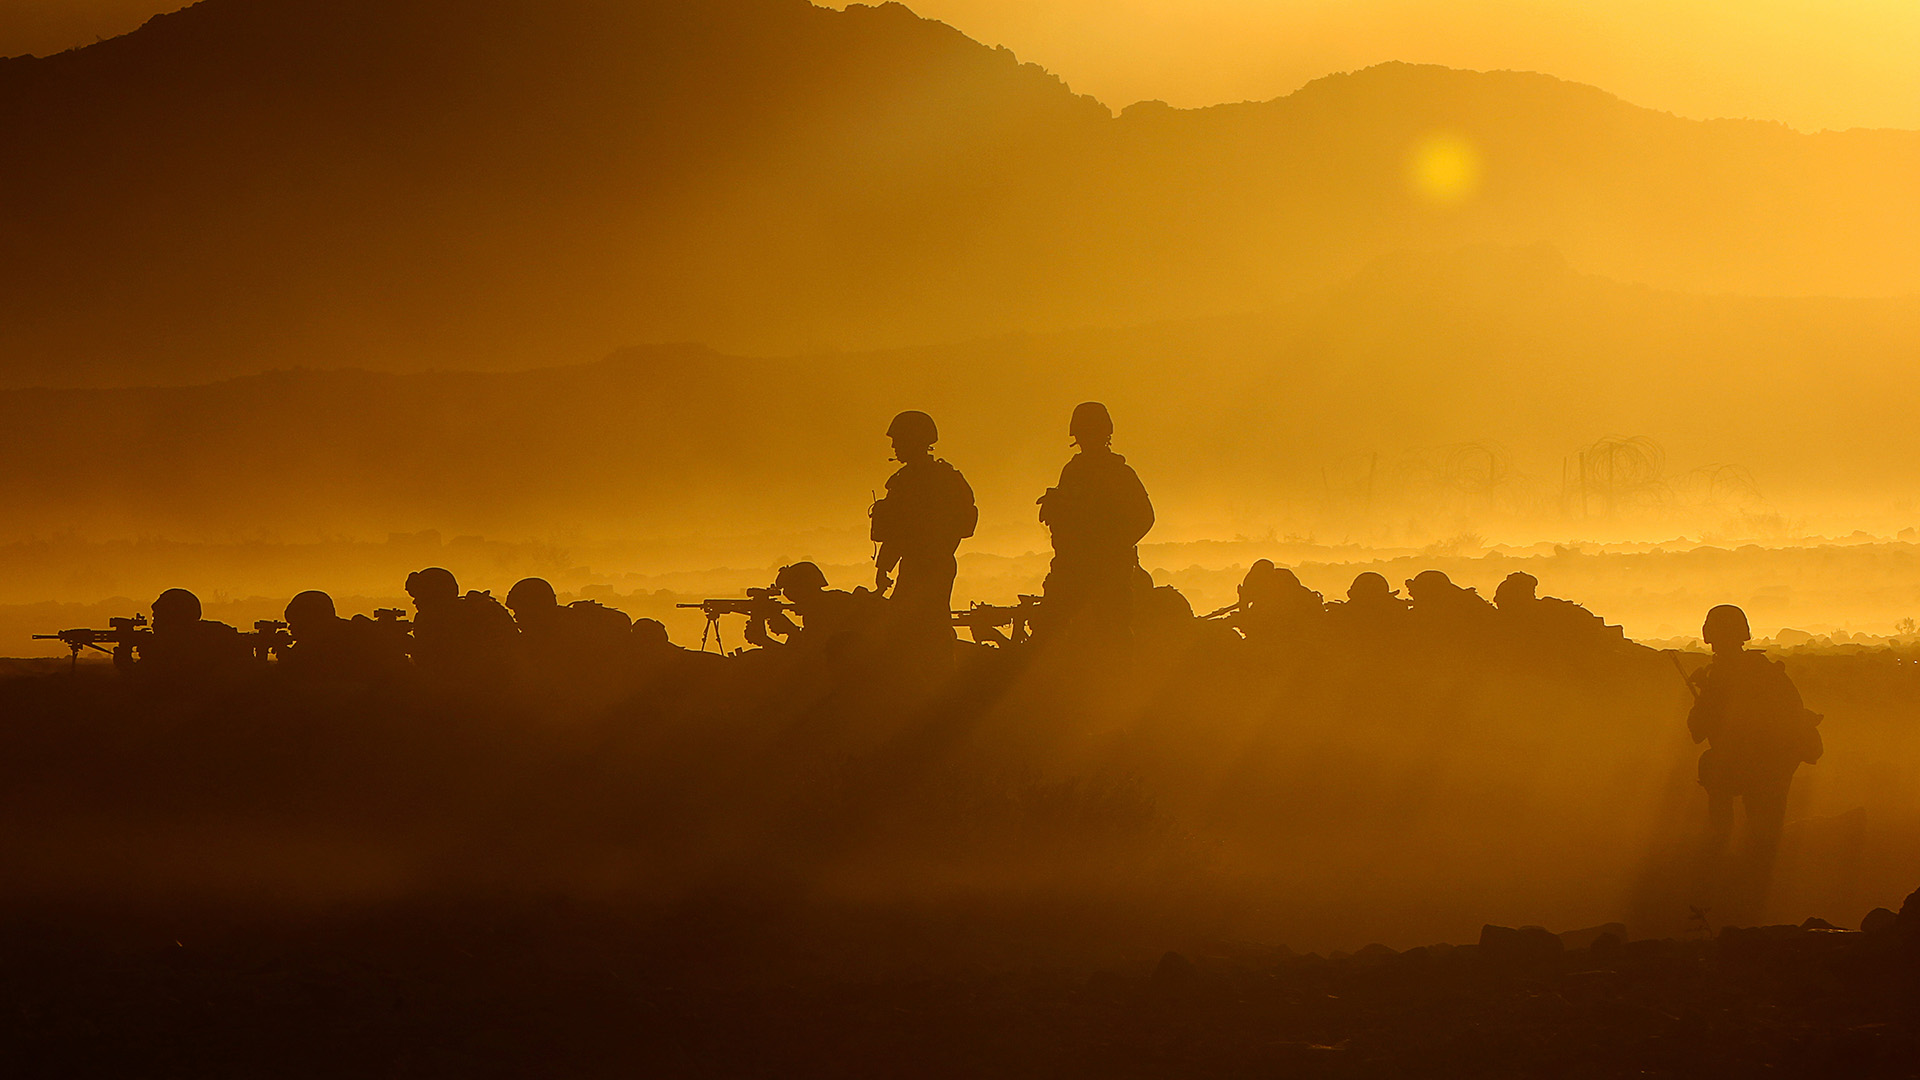 Soldiers on a sun-setting battlefield